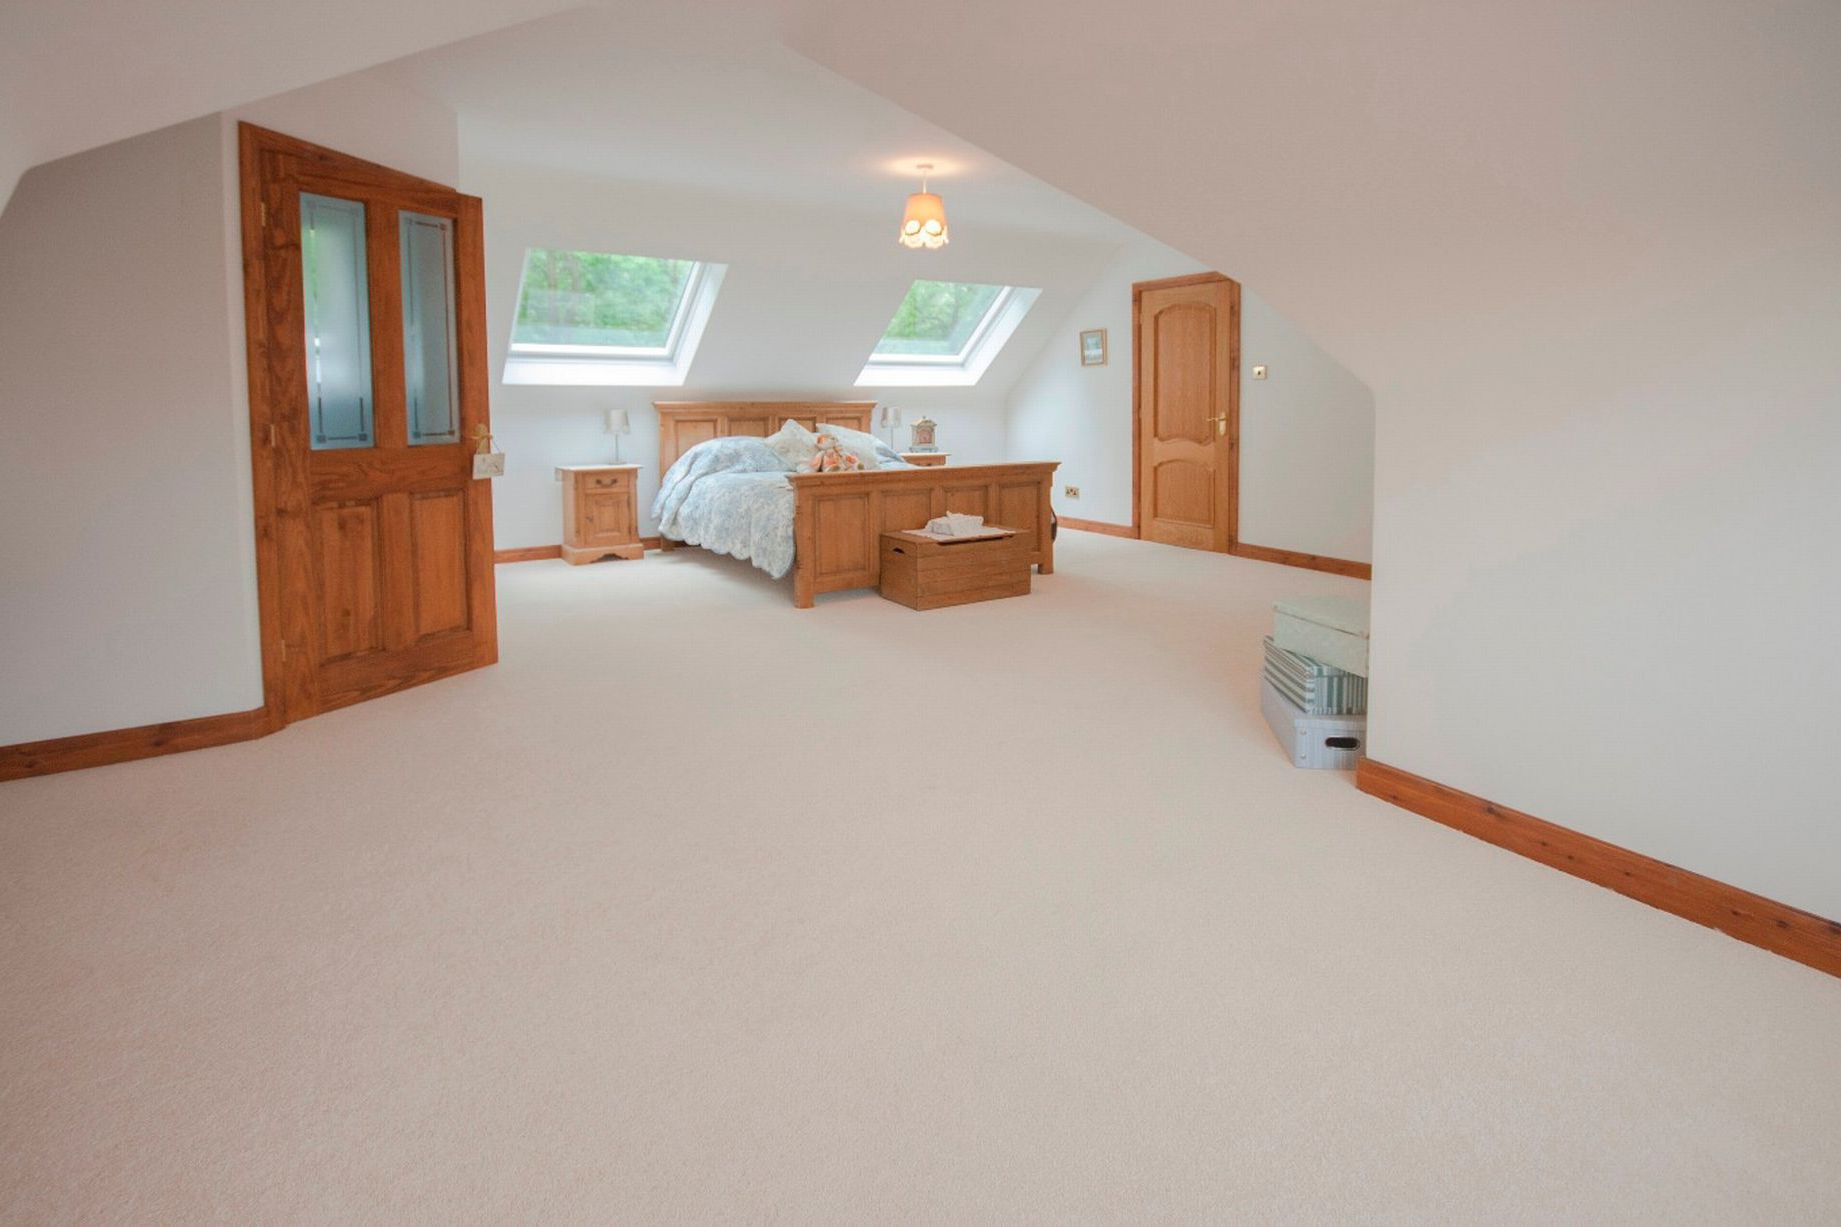 Cottage dormer loft conversion in Thornton-Cleveleys, creating a large bedroom with Velux windows